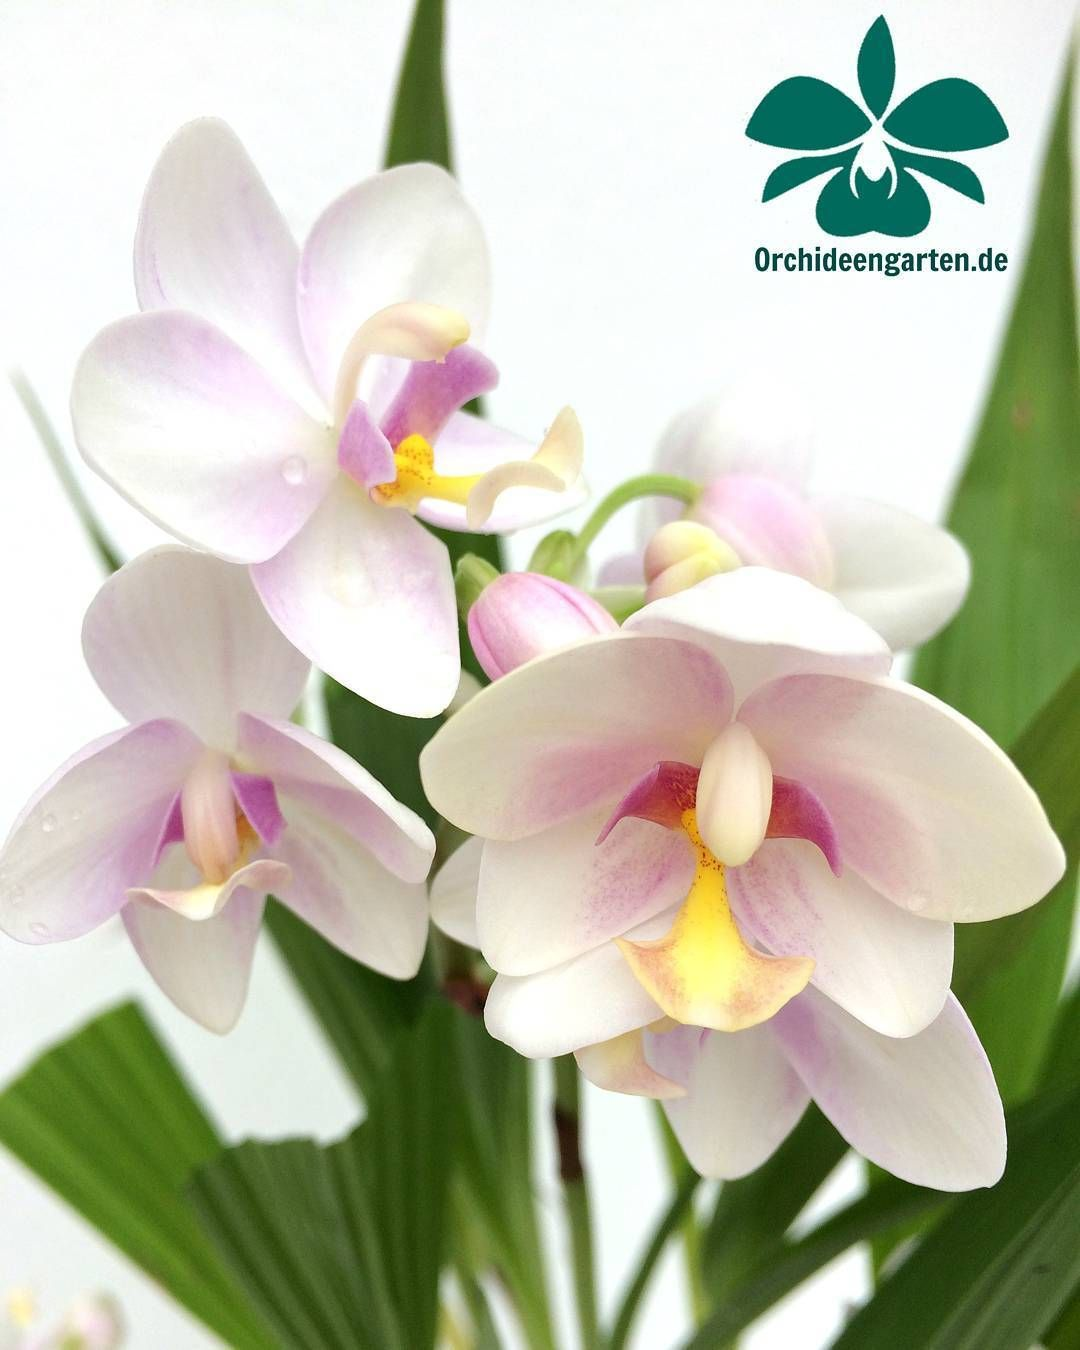 Spathoglottis Hybride Weiss Orchids Orchidee Orchideen Orchideengarten Orchidacea Orchidshare Orchidfan Asorq Beautiful Orchids Unusual Flowers Orchids